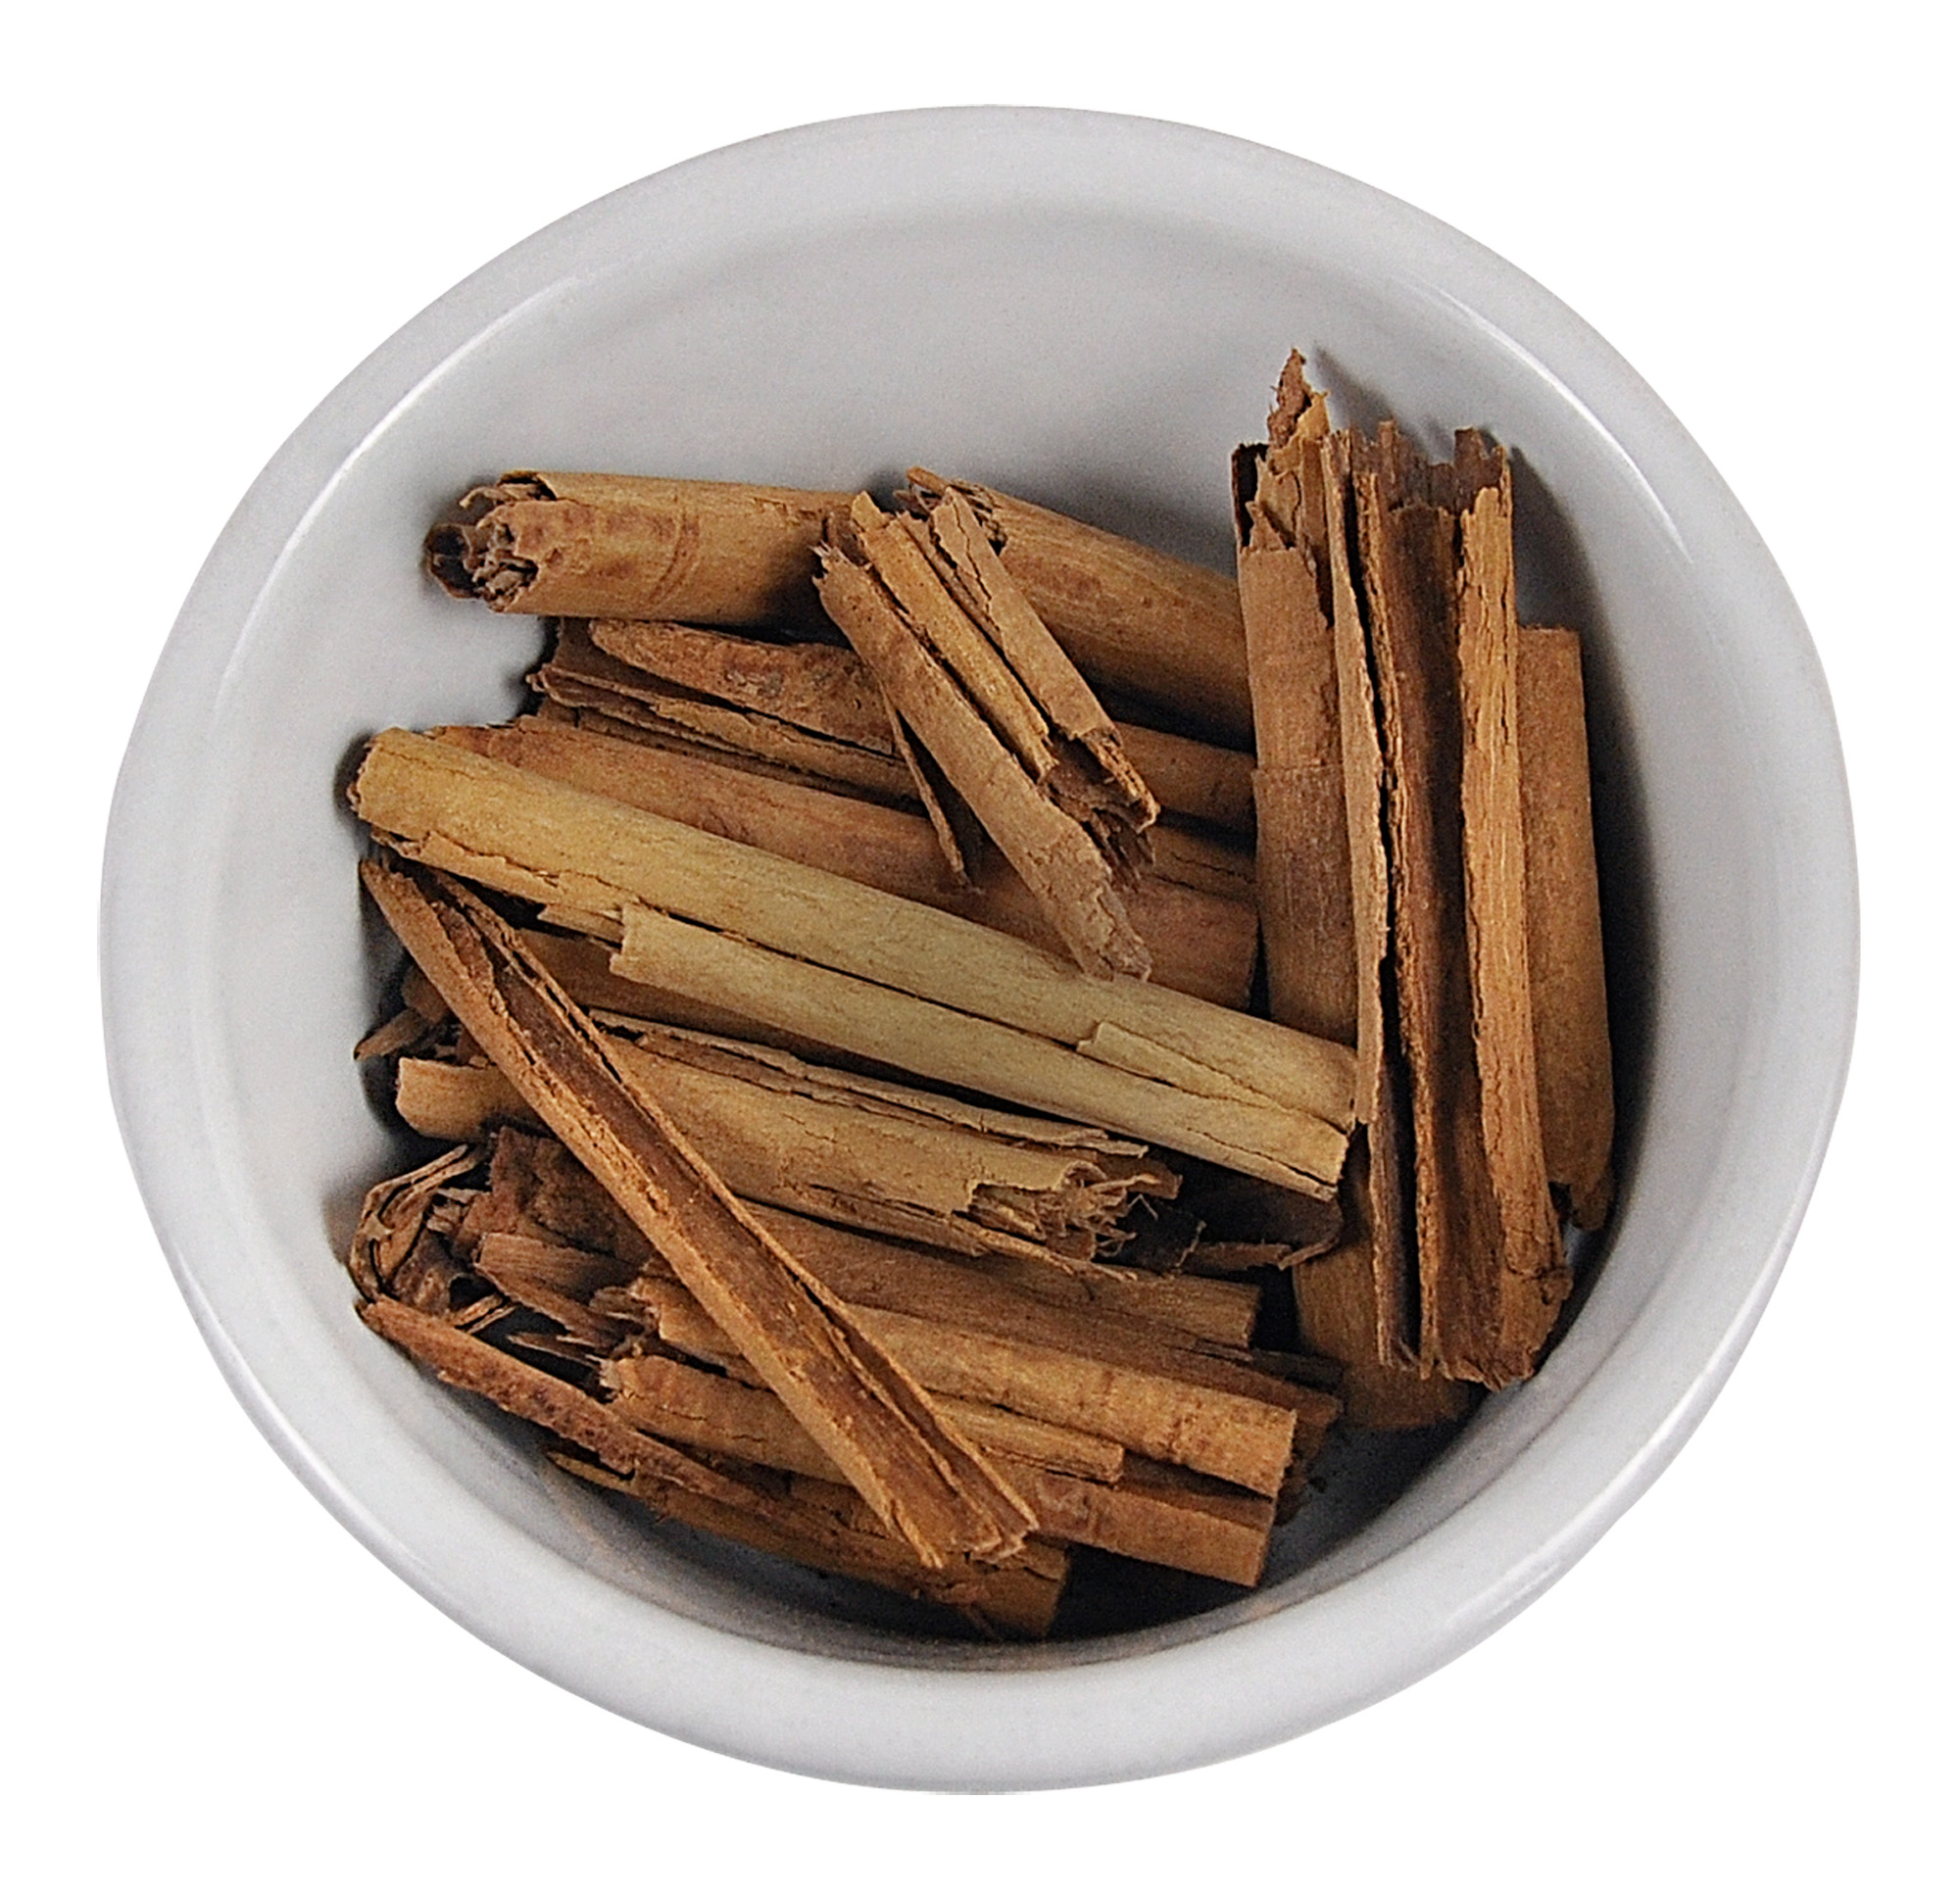 we use ceylon cinnamon in our spicenectar, known as the true cinnamon